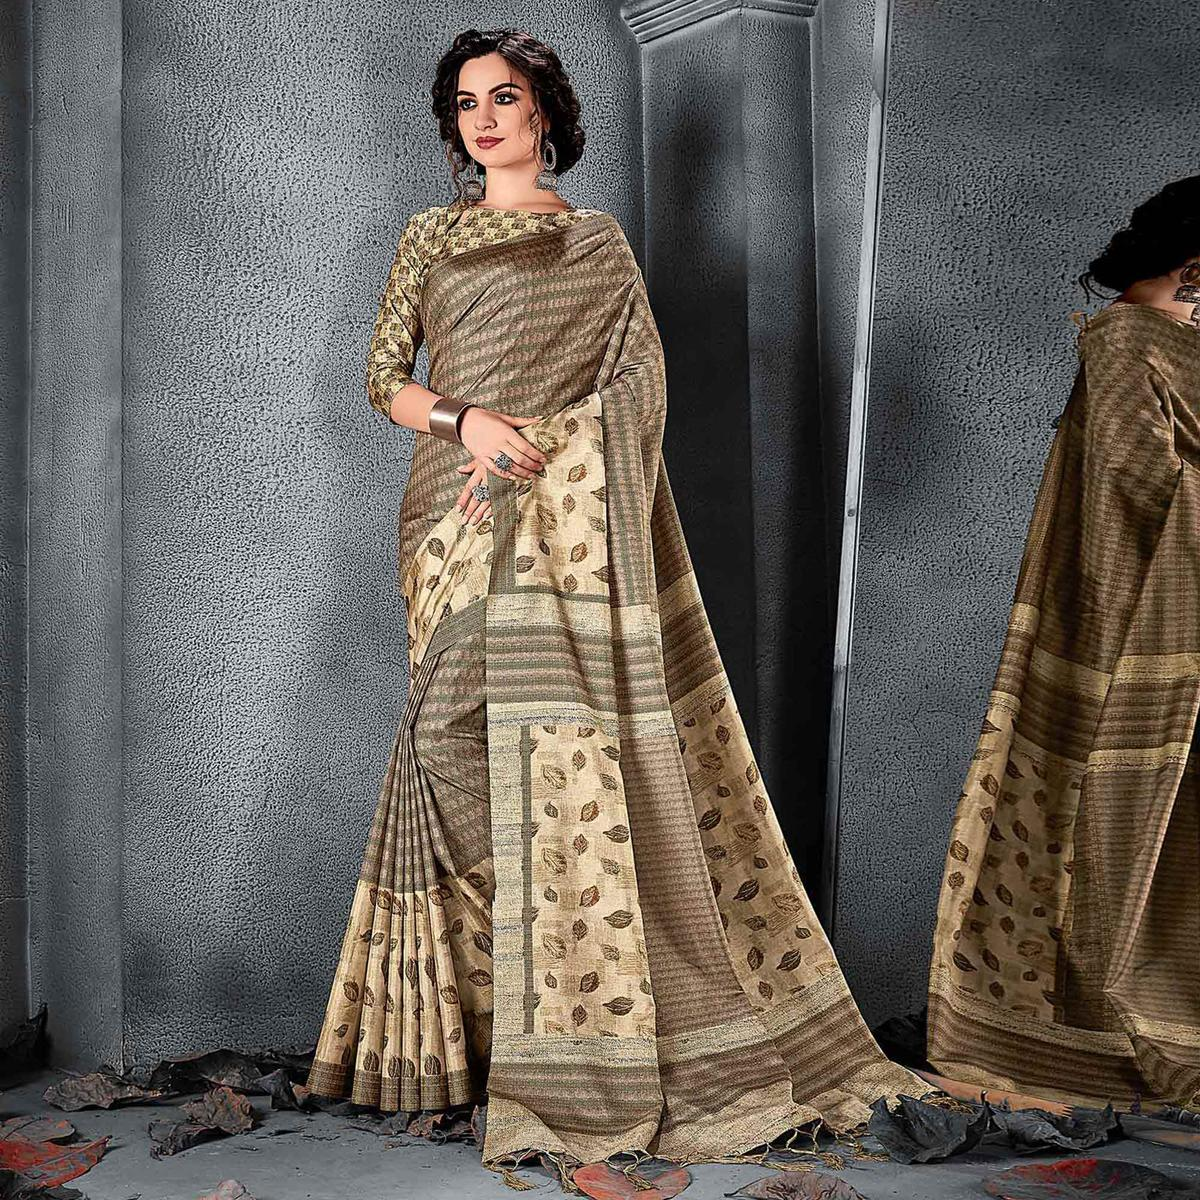 Sareemall Beige Festive Manipuri Silk Floral Saree With Unstitched Blouse